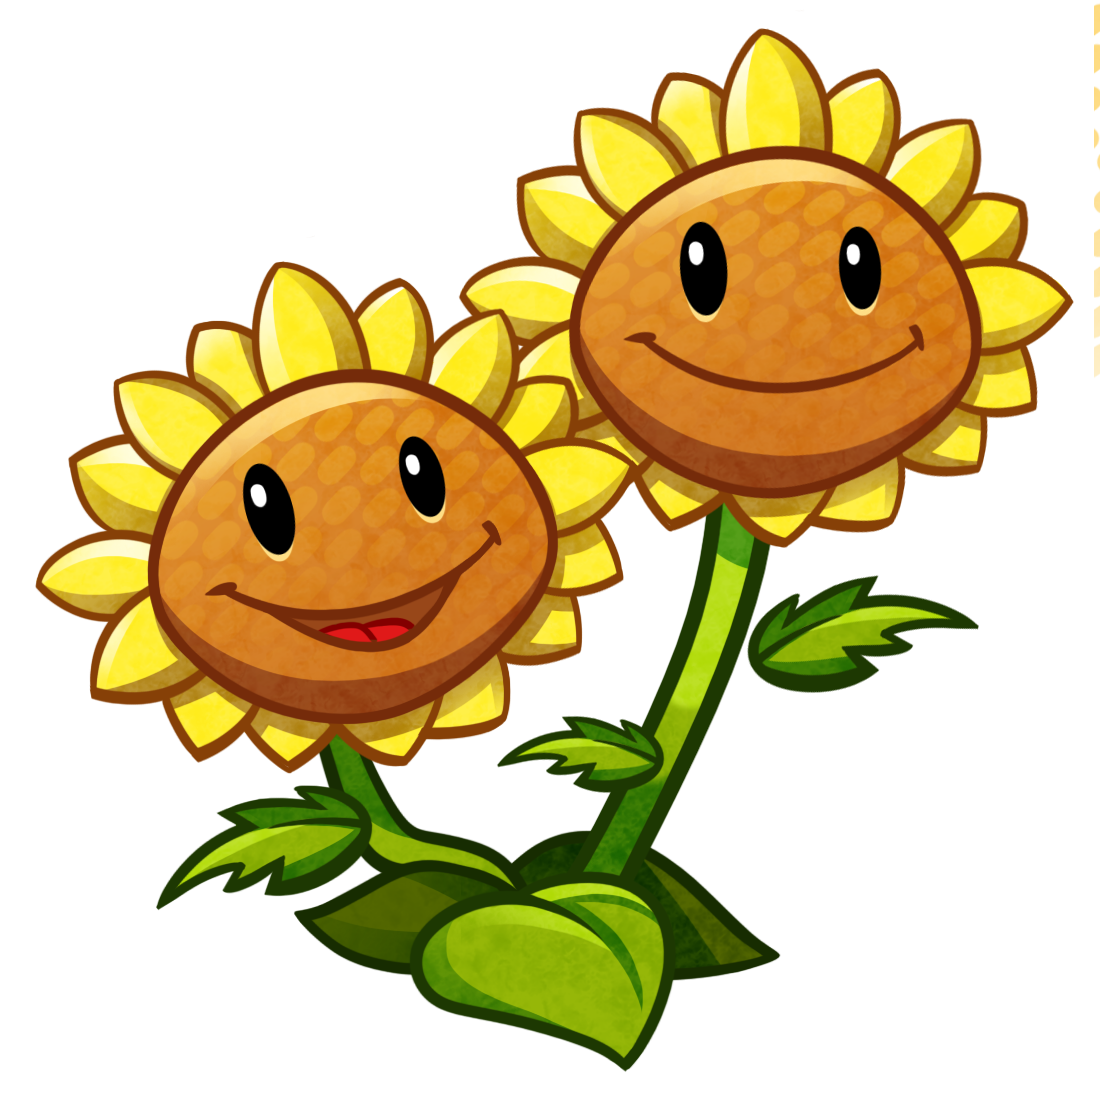 Plants zombies on twitter. Zombie clipart plant vs zombie